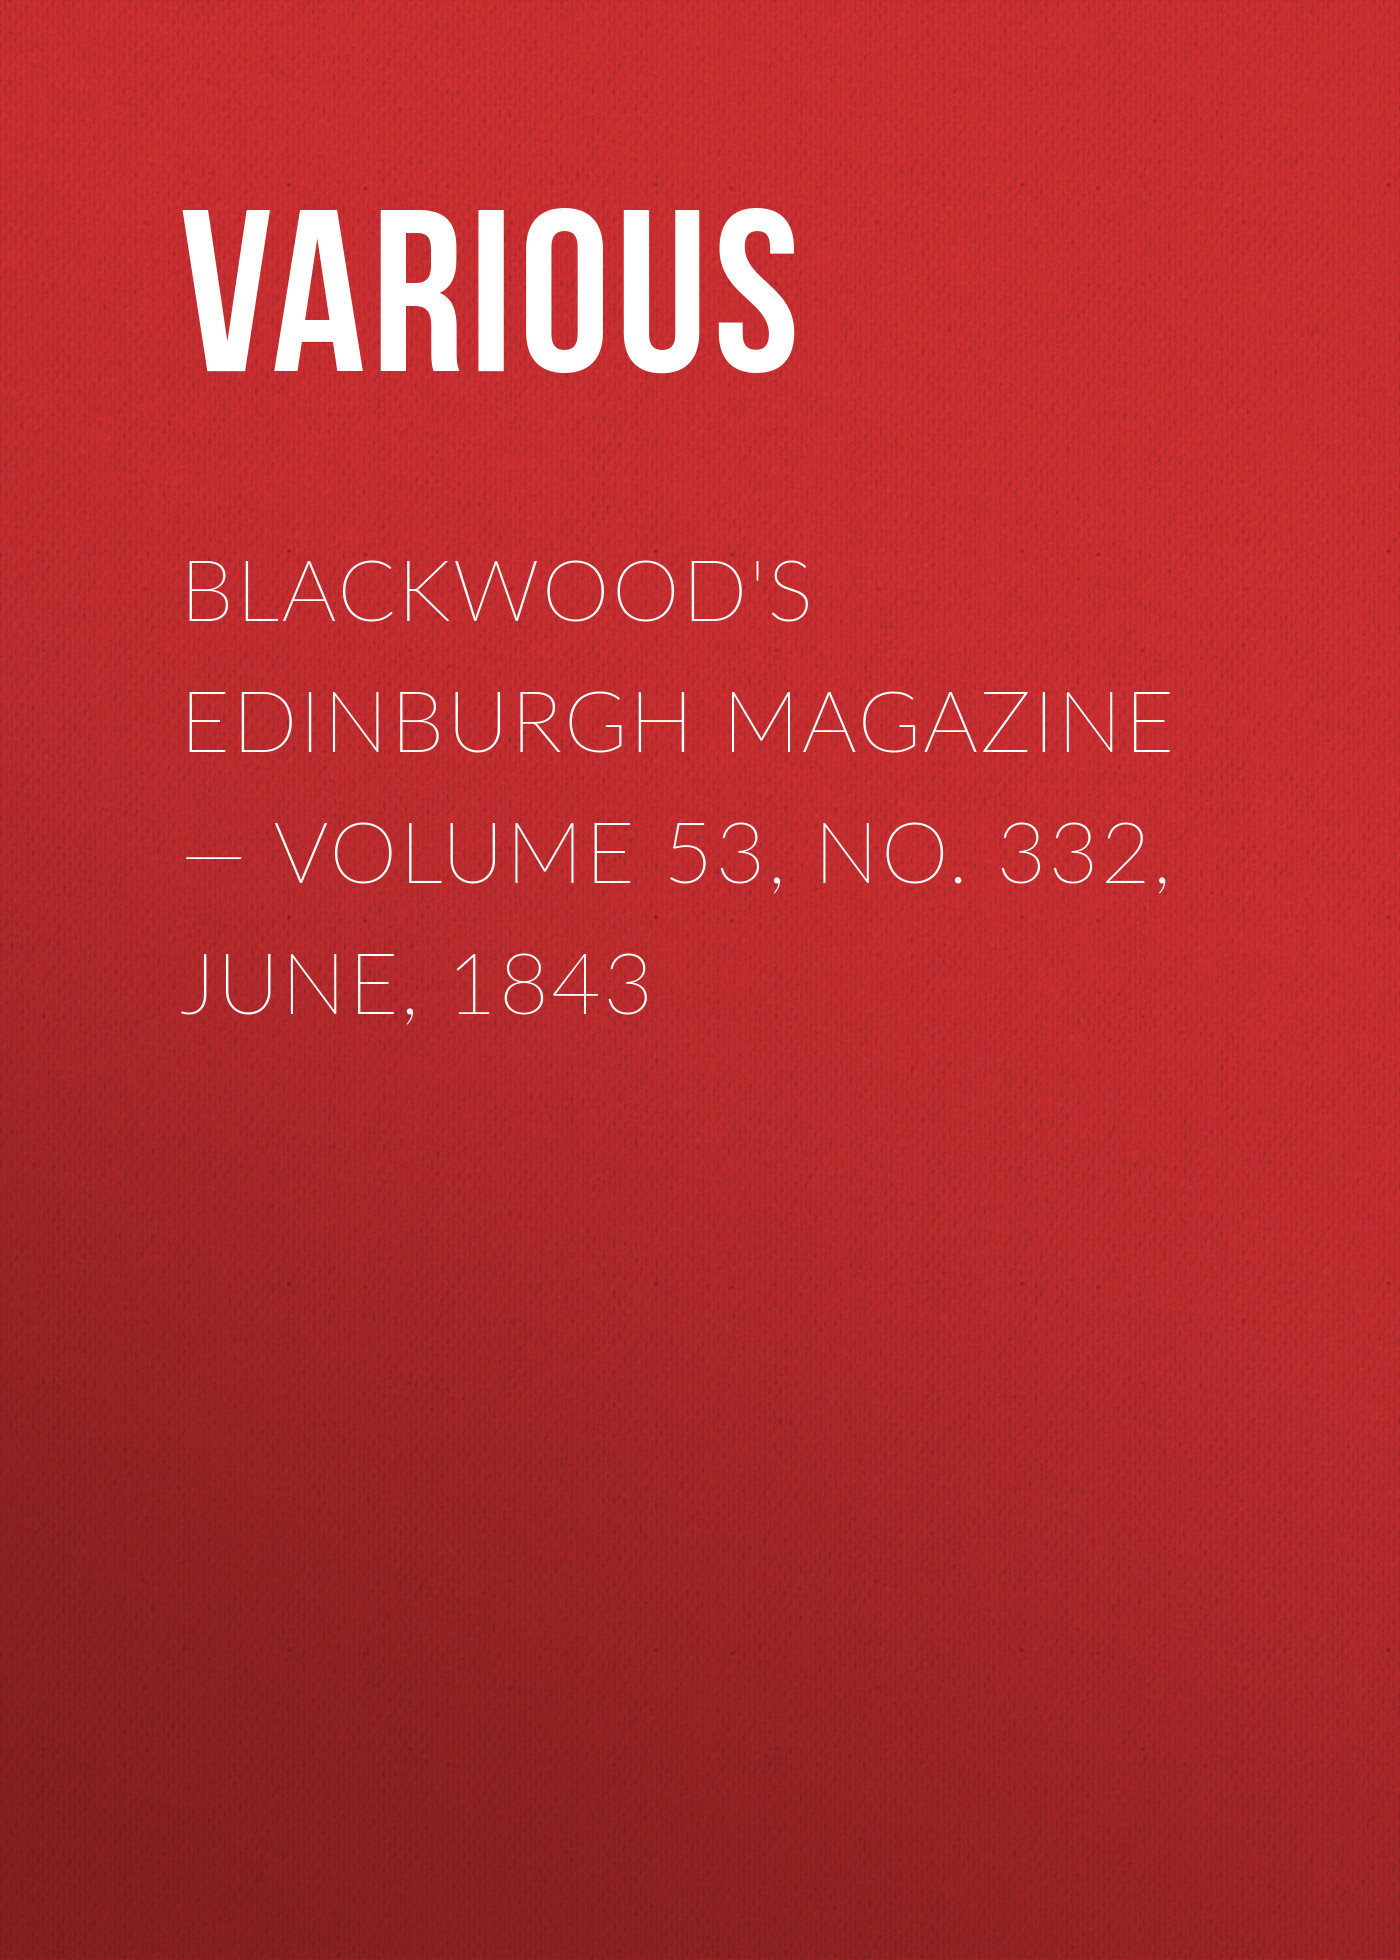 Blackwoods Edinburgh Magazine – Volume 53, No. 332, June, 1843